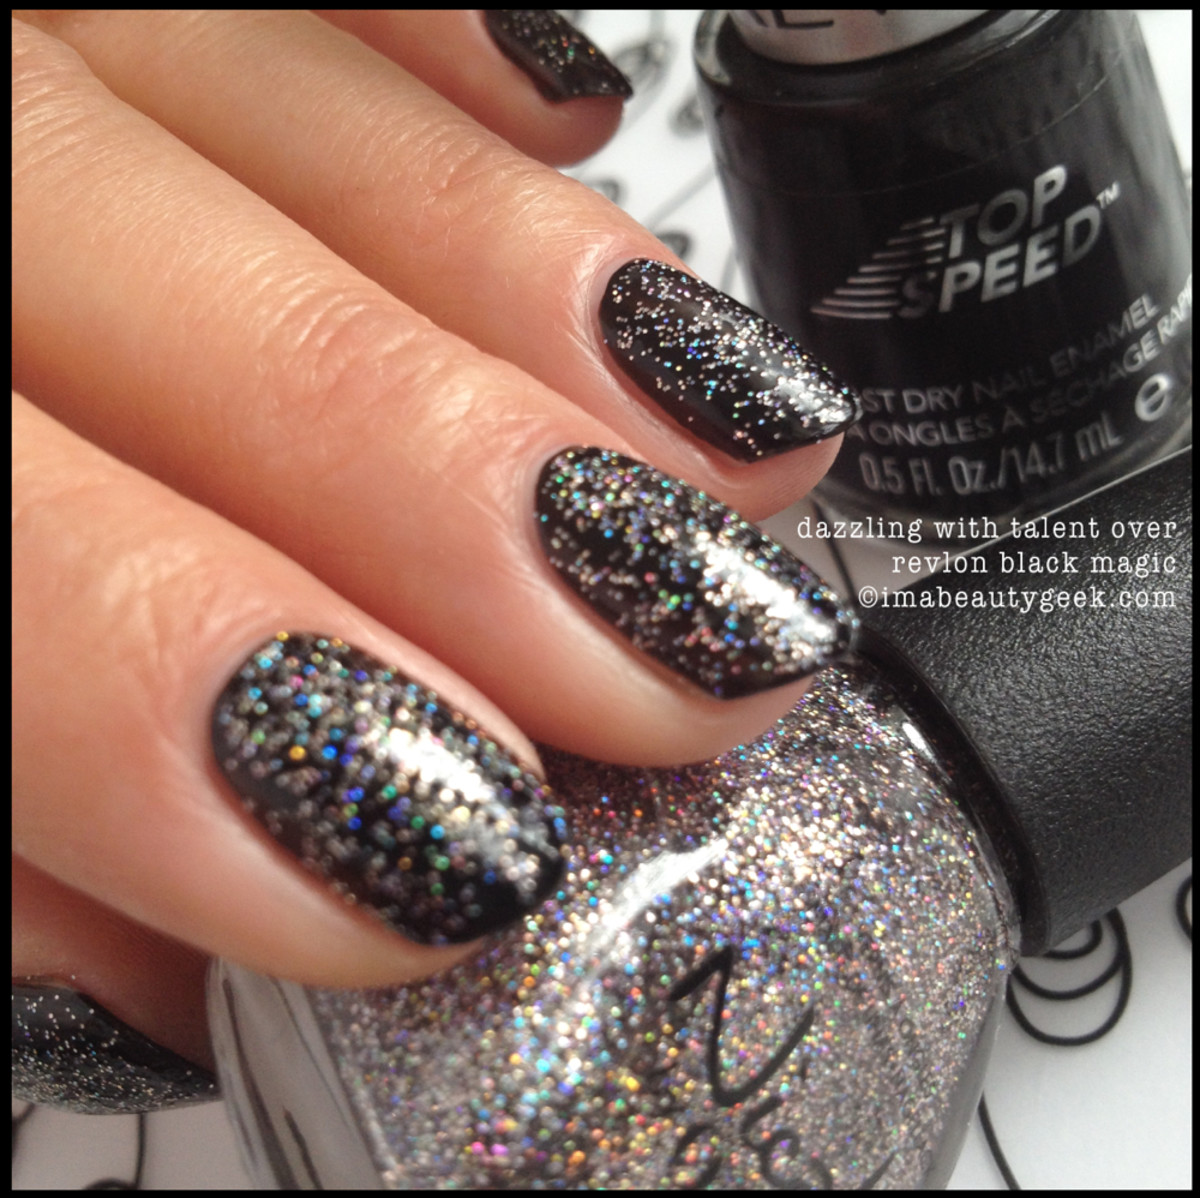 Nicole by OPI Dazzling with Talent over Black